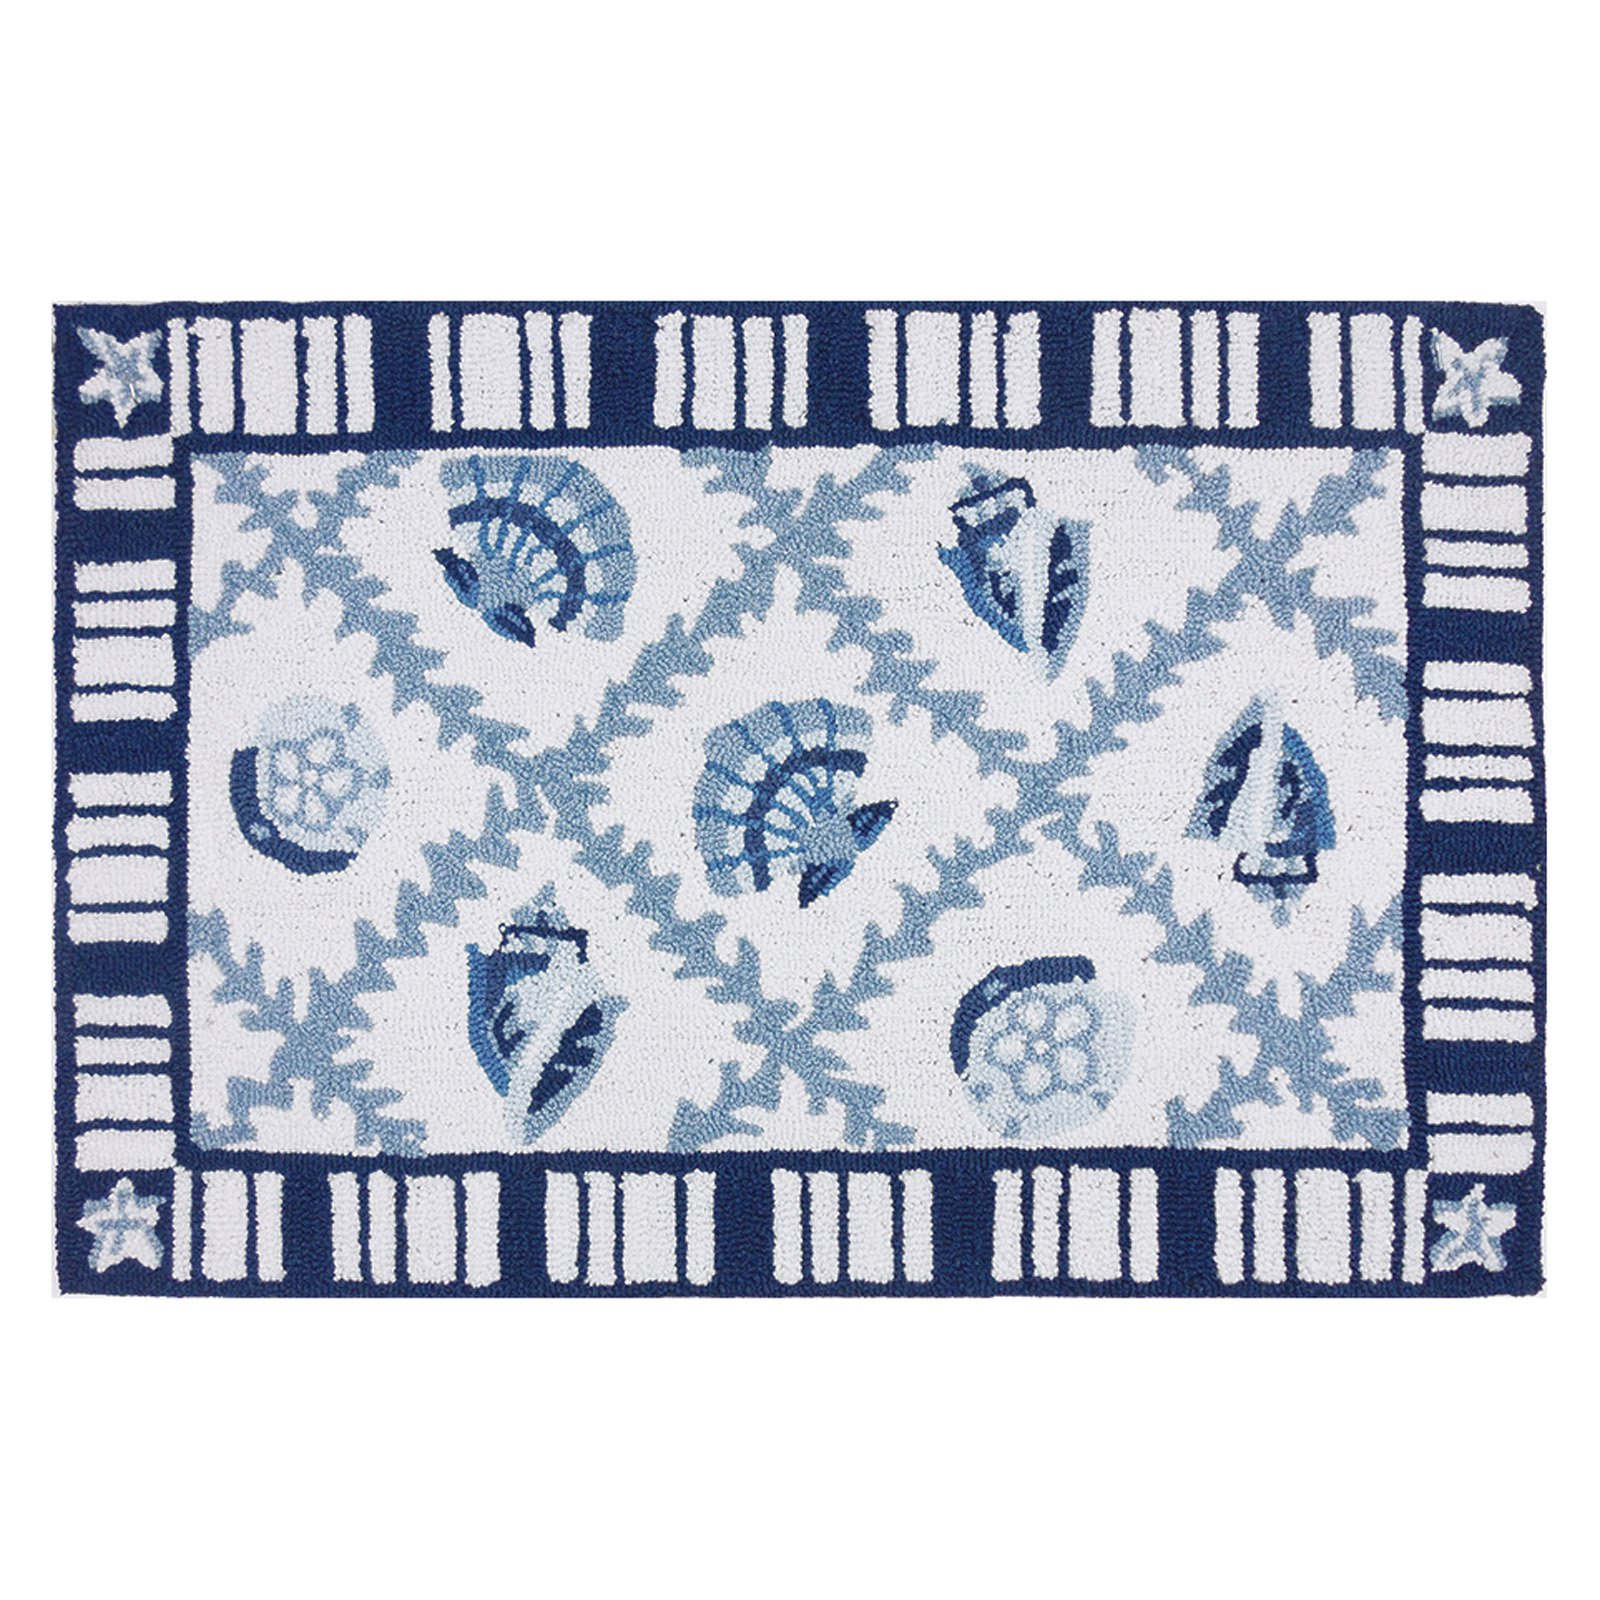 Homefires Navy Blues Indoor Accent Rug